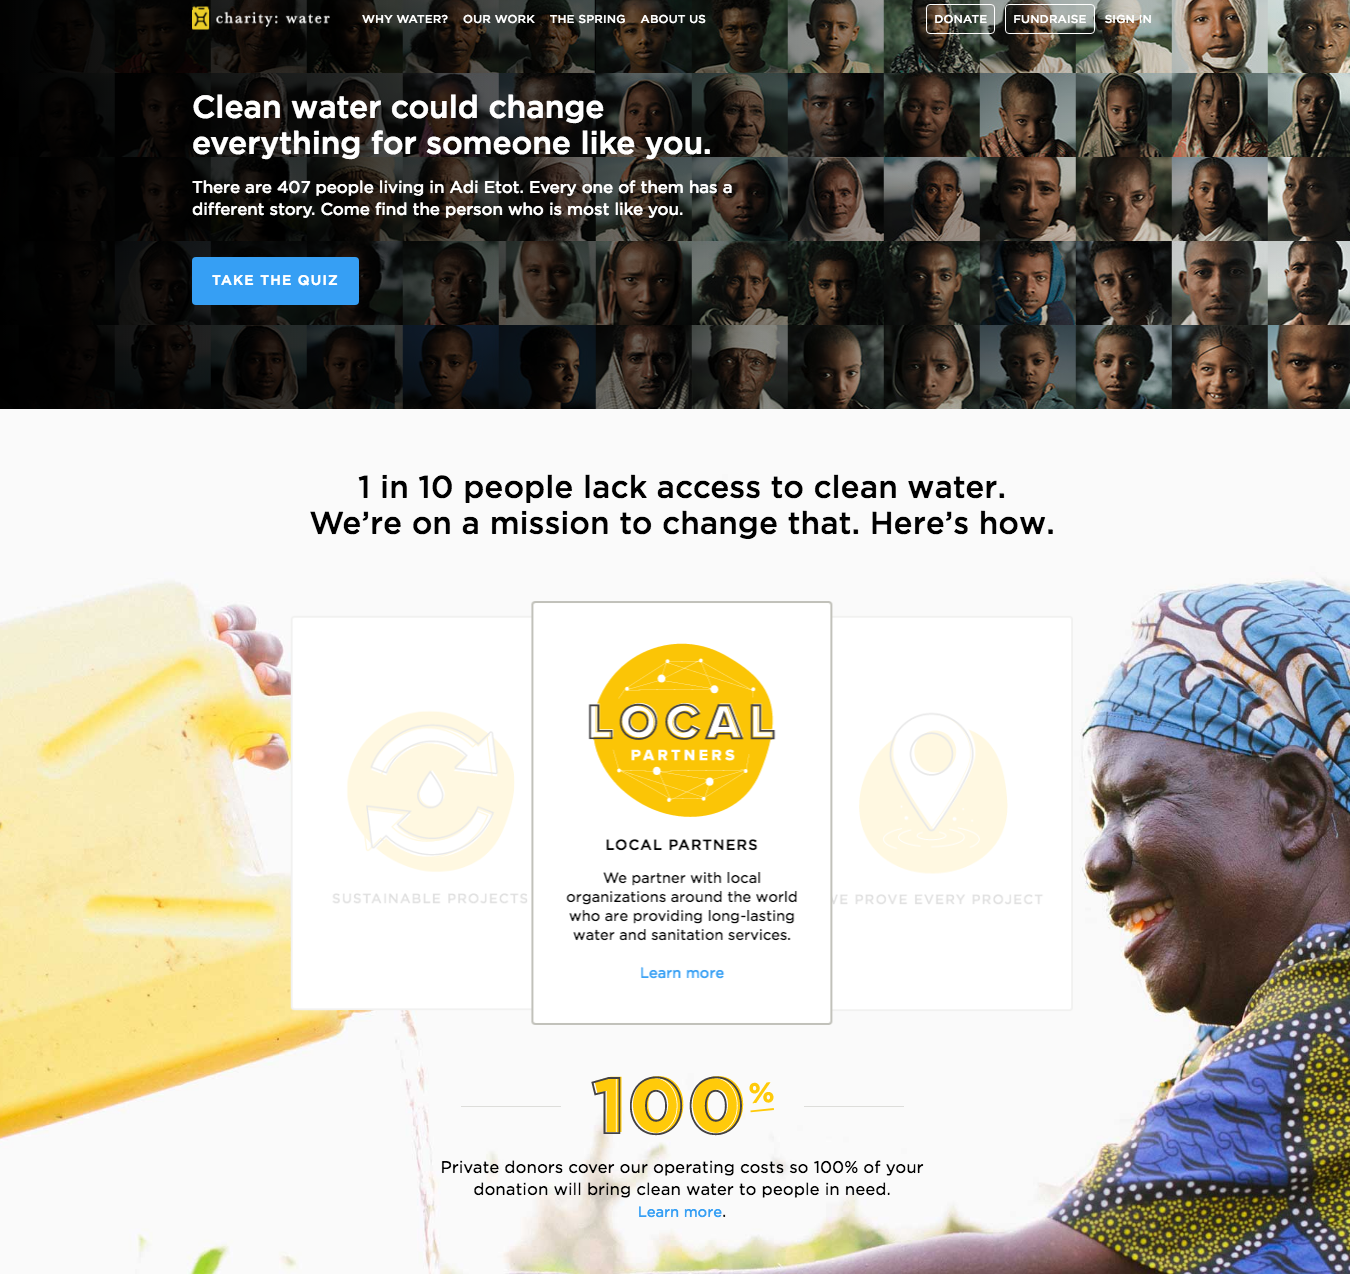 charity: water homepage web design